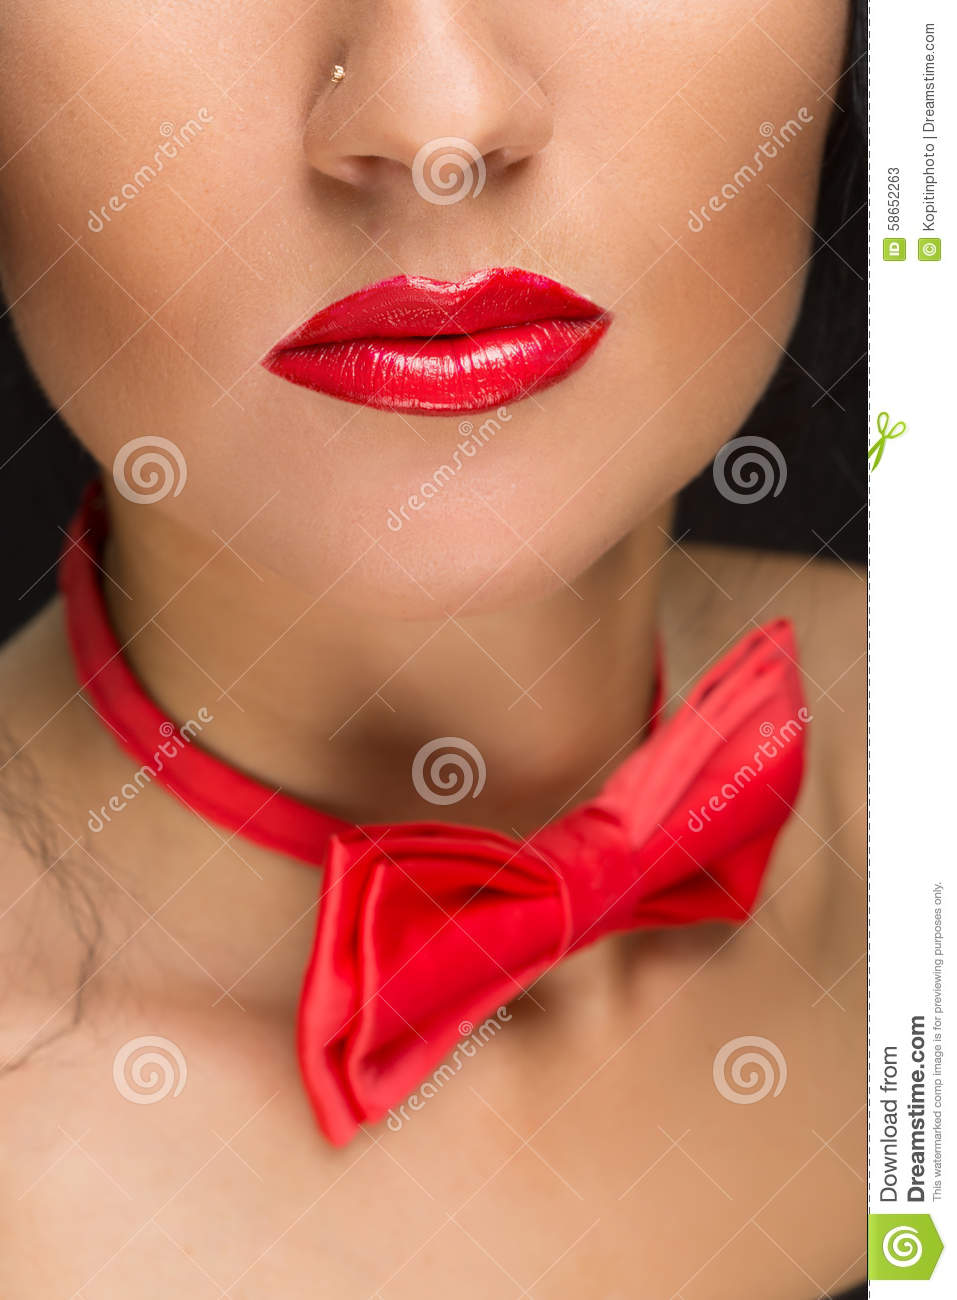 lipstick tied up Red